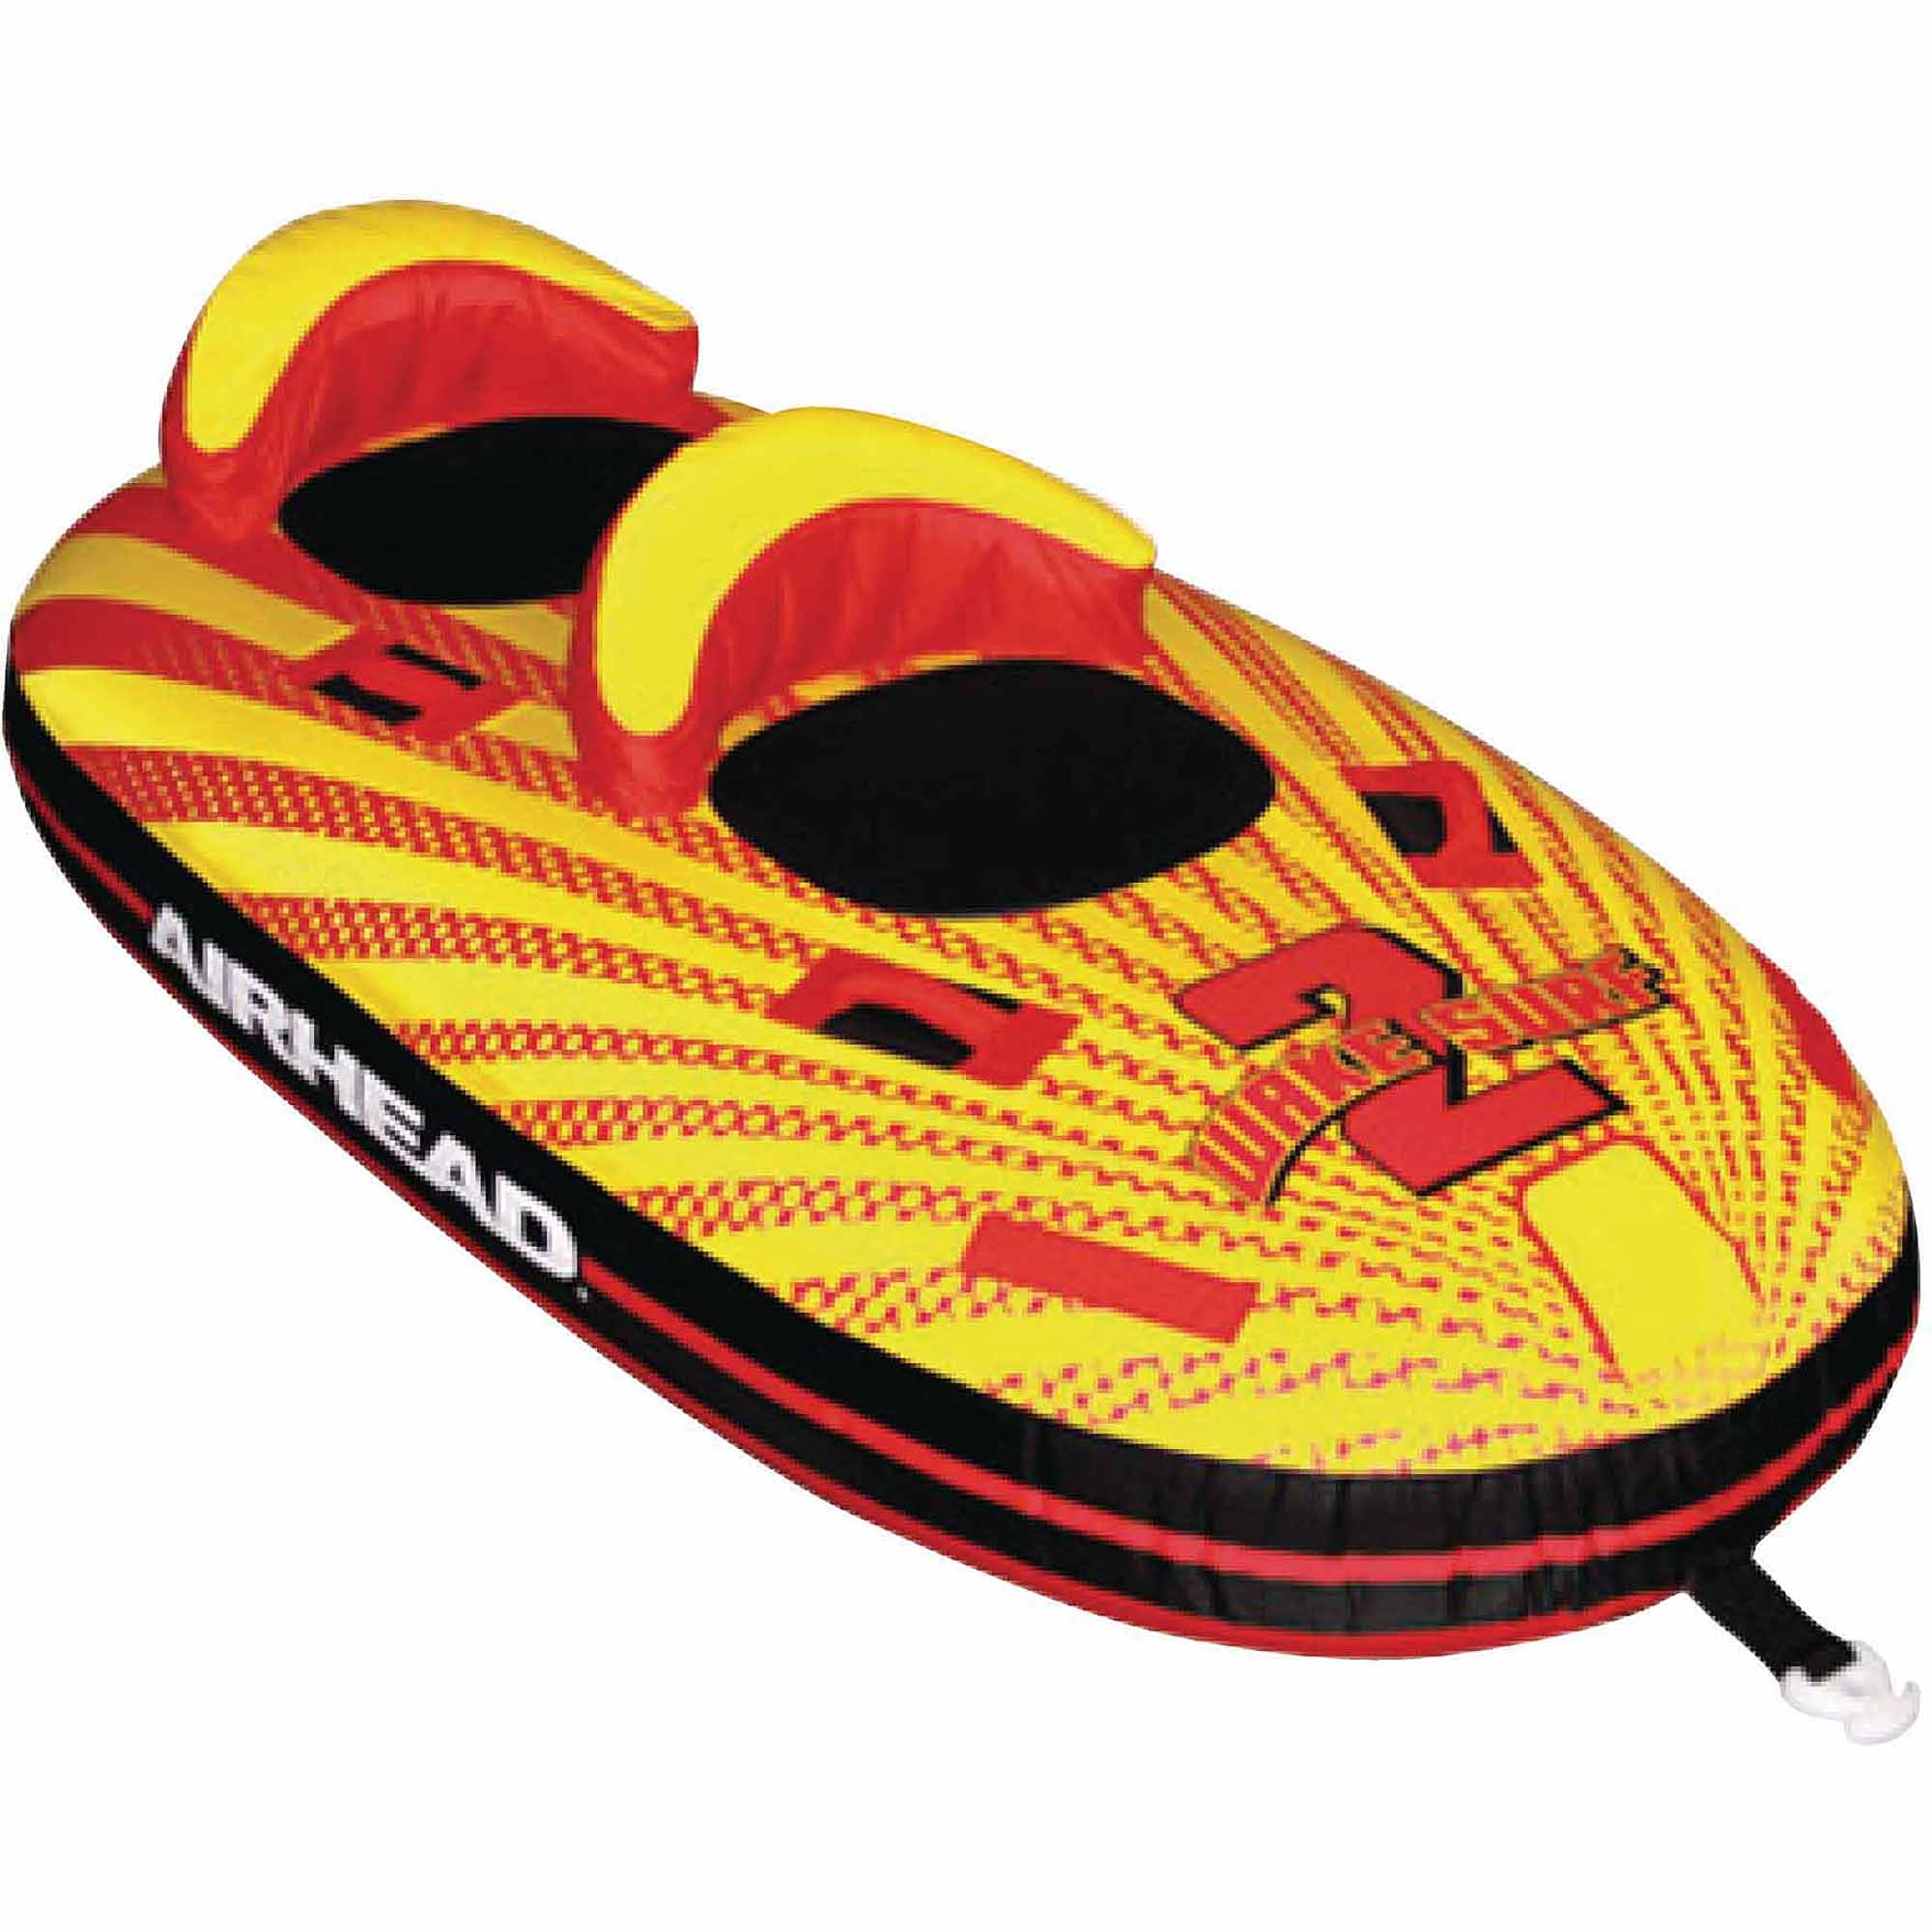 Airhead Wake Surf Inflatable Towable, Doubles as a Kayak by Kwik Tek